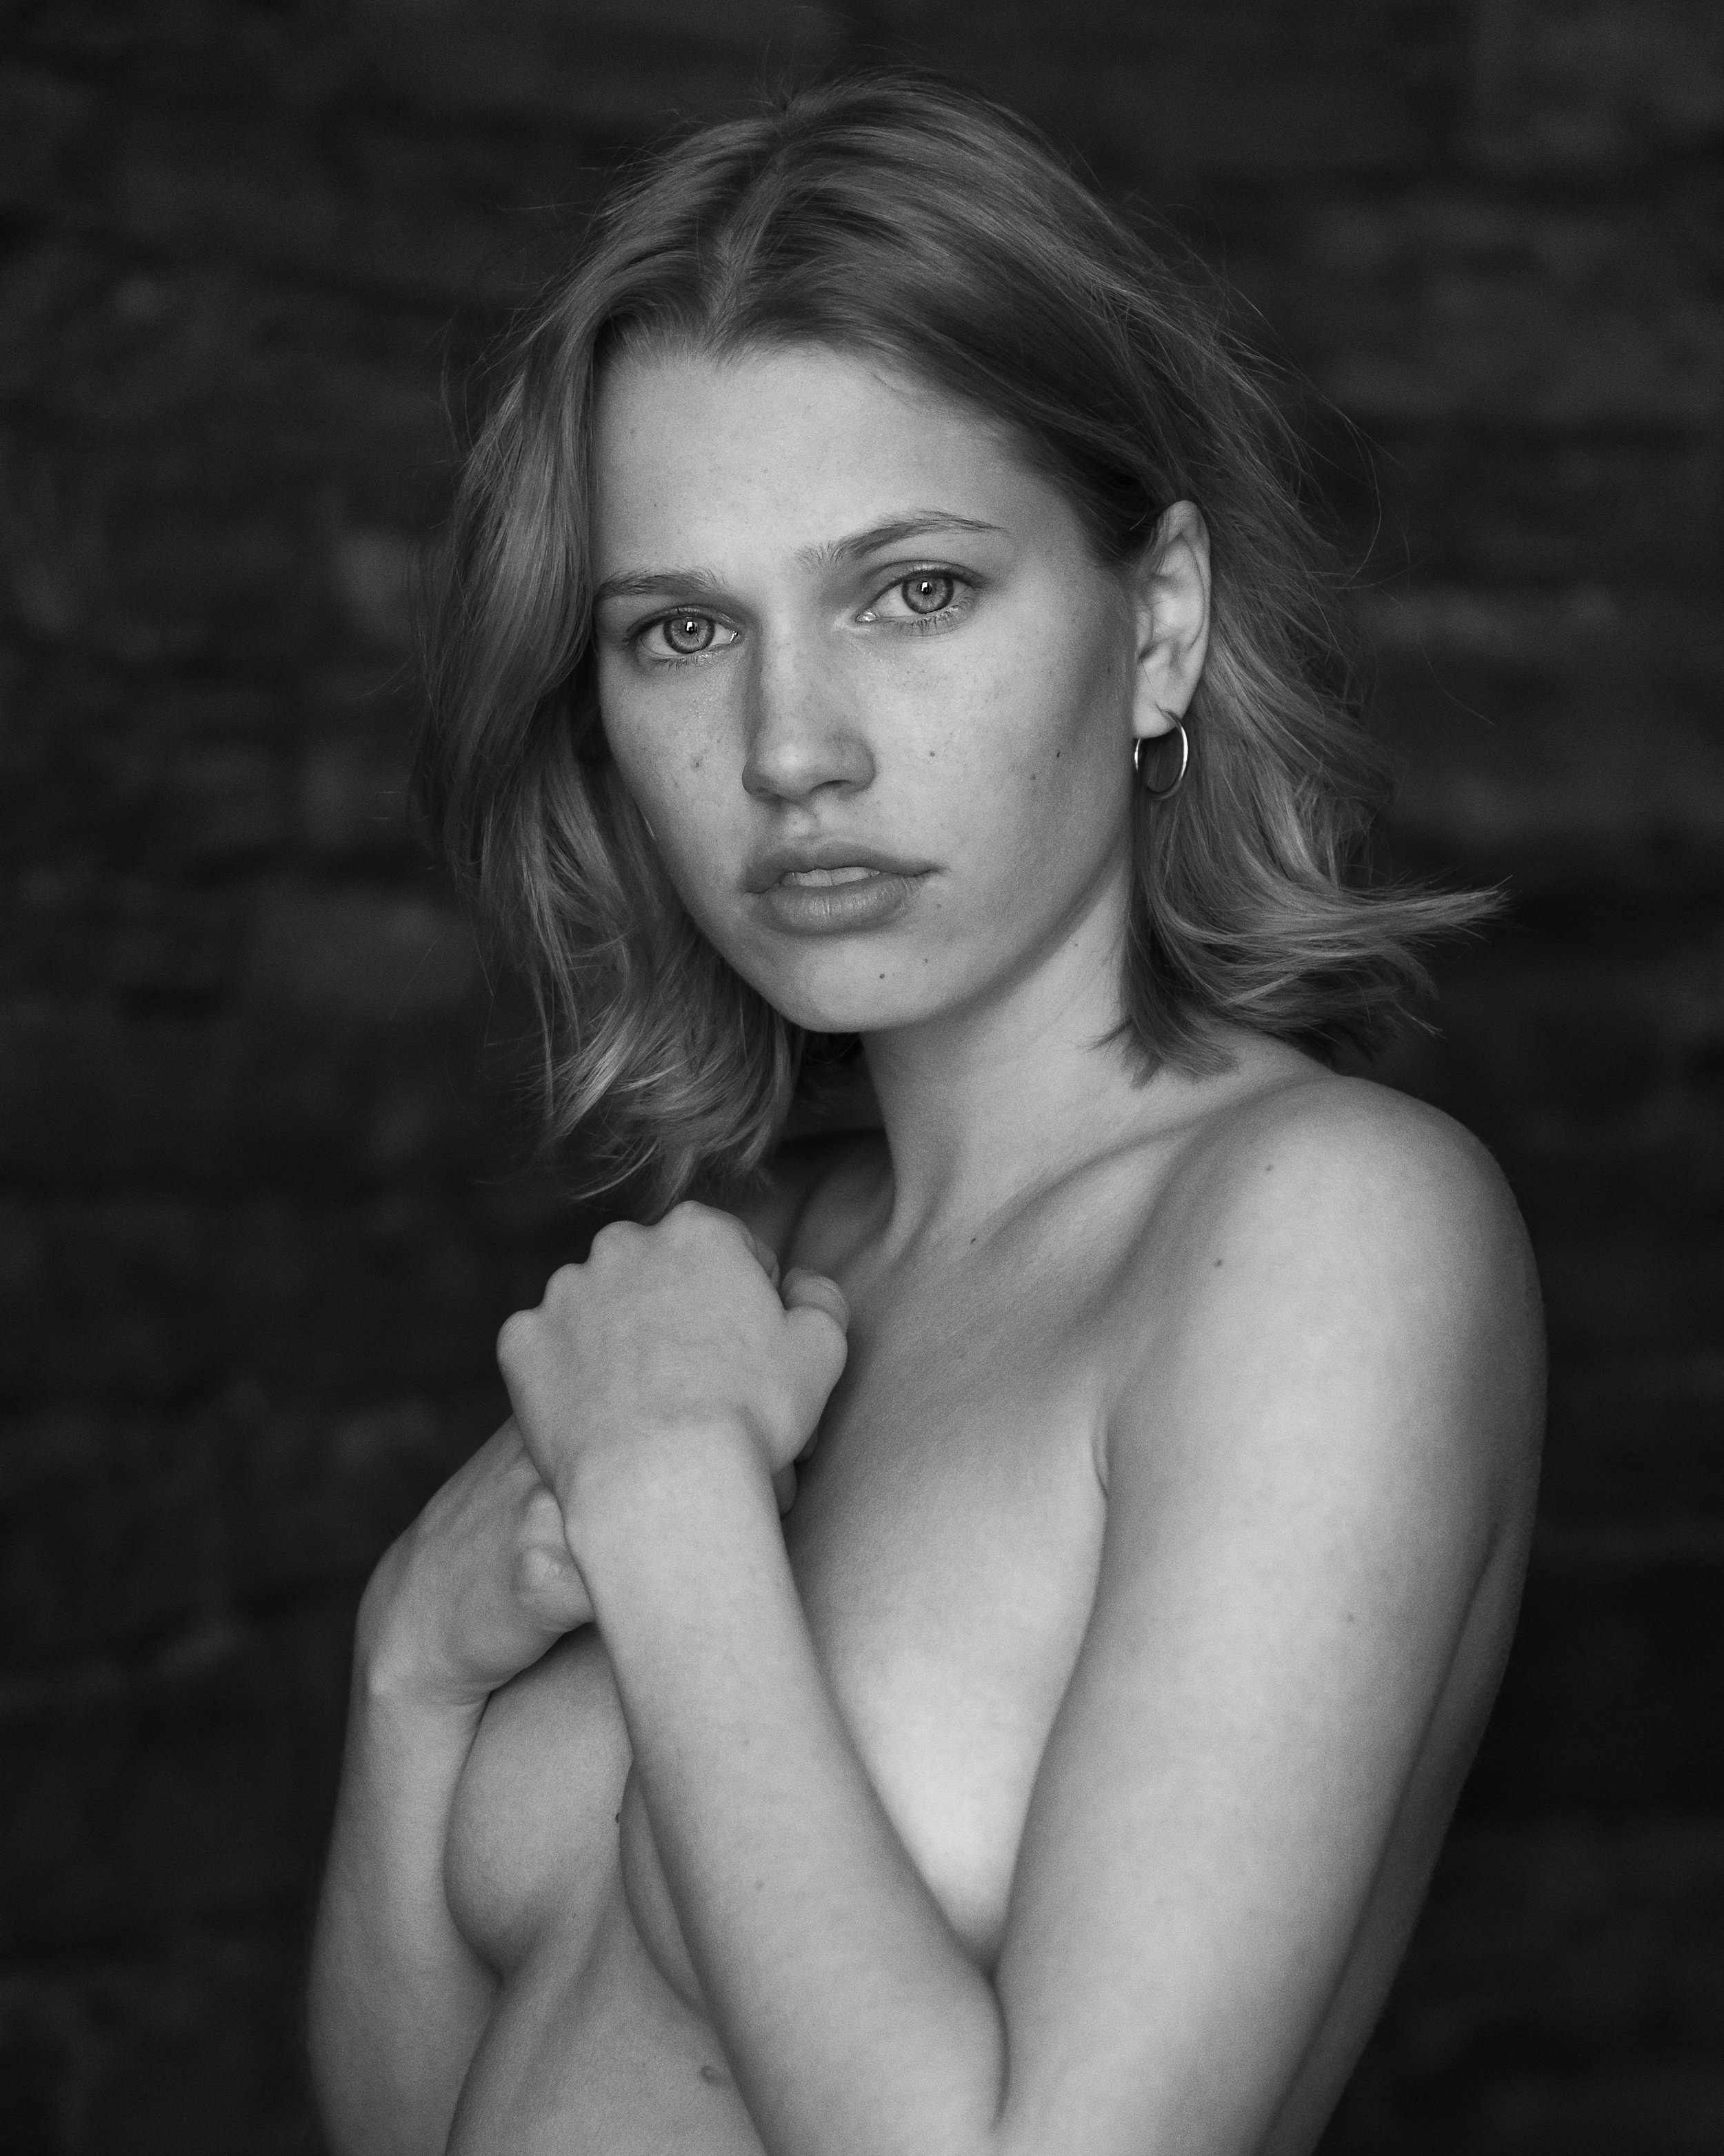 Thea Sofie Loch Næss nue